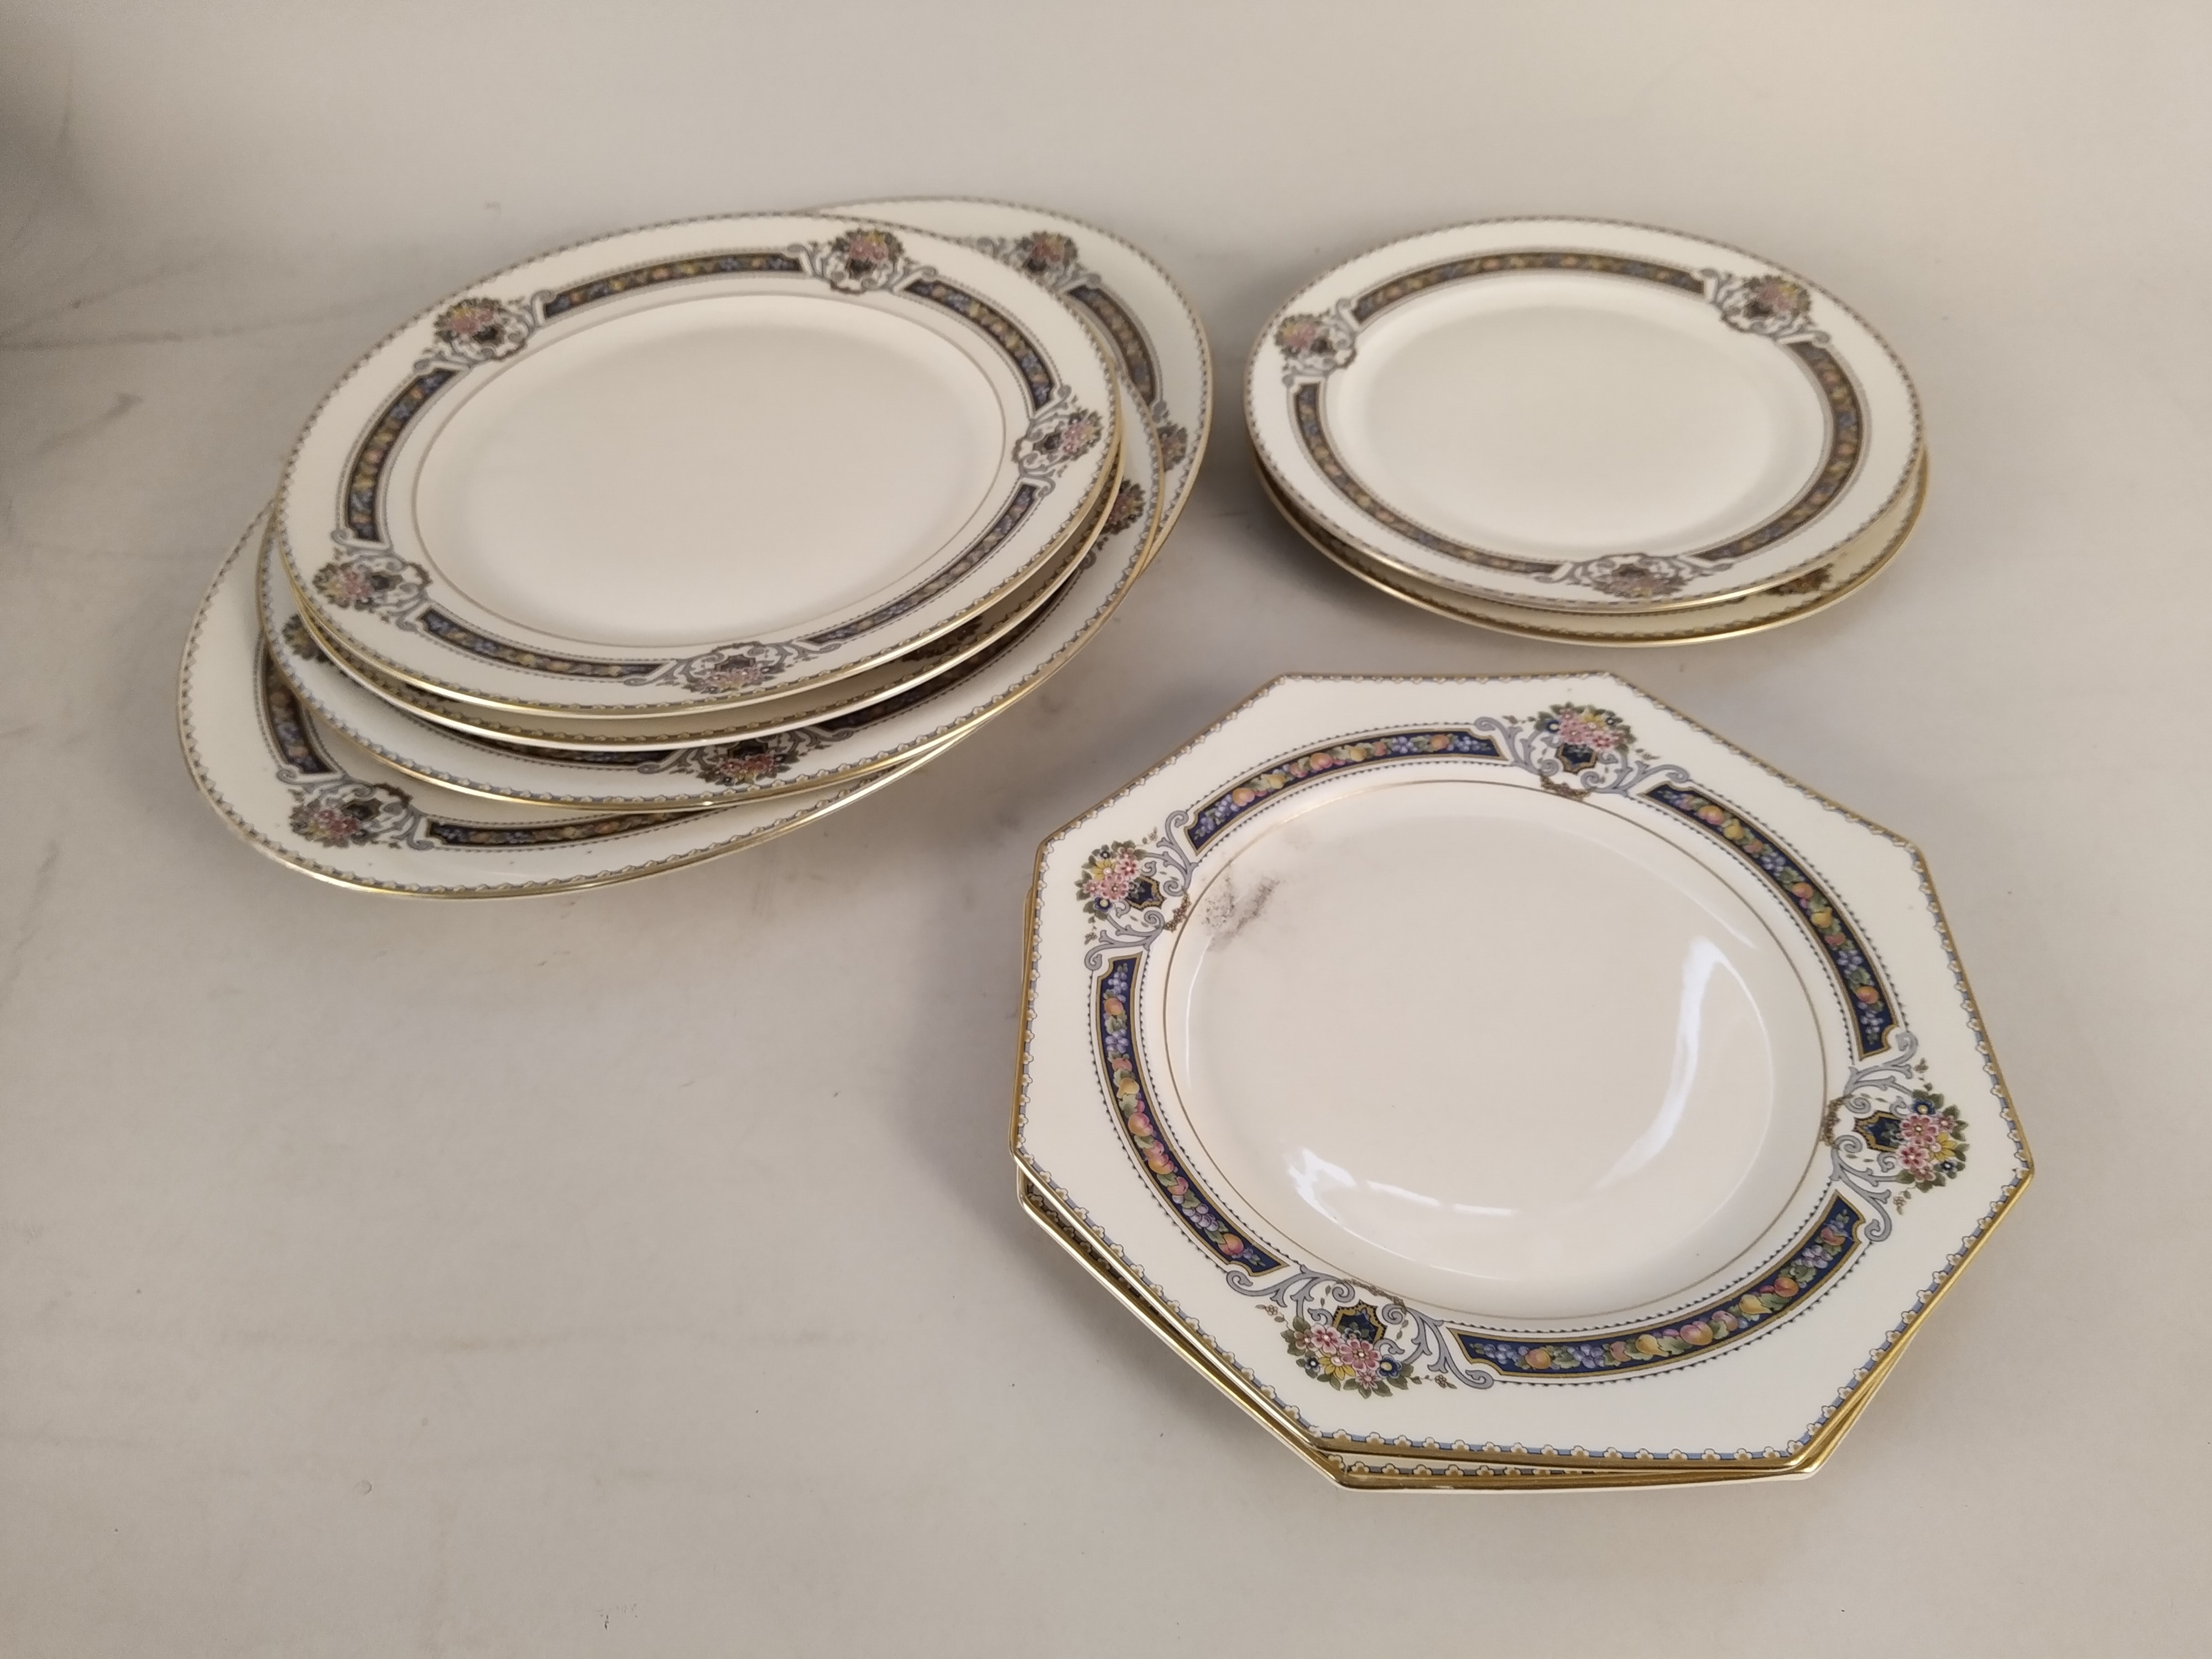 A part Rosenthal 'Orelay' pattern dinner service - Image 2 of 3